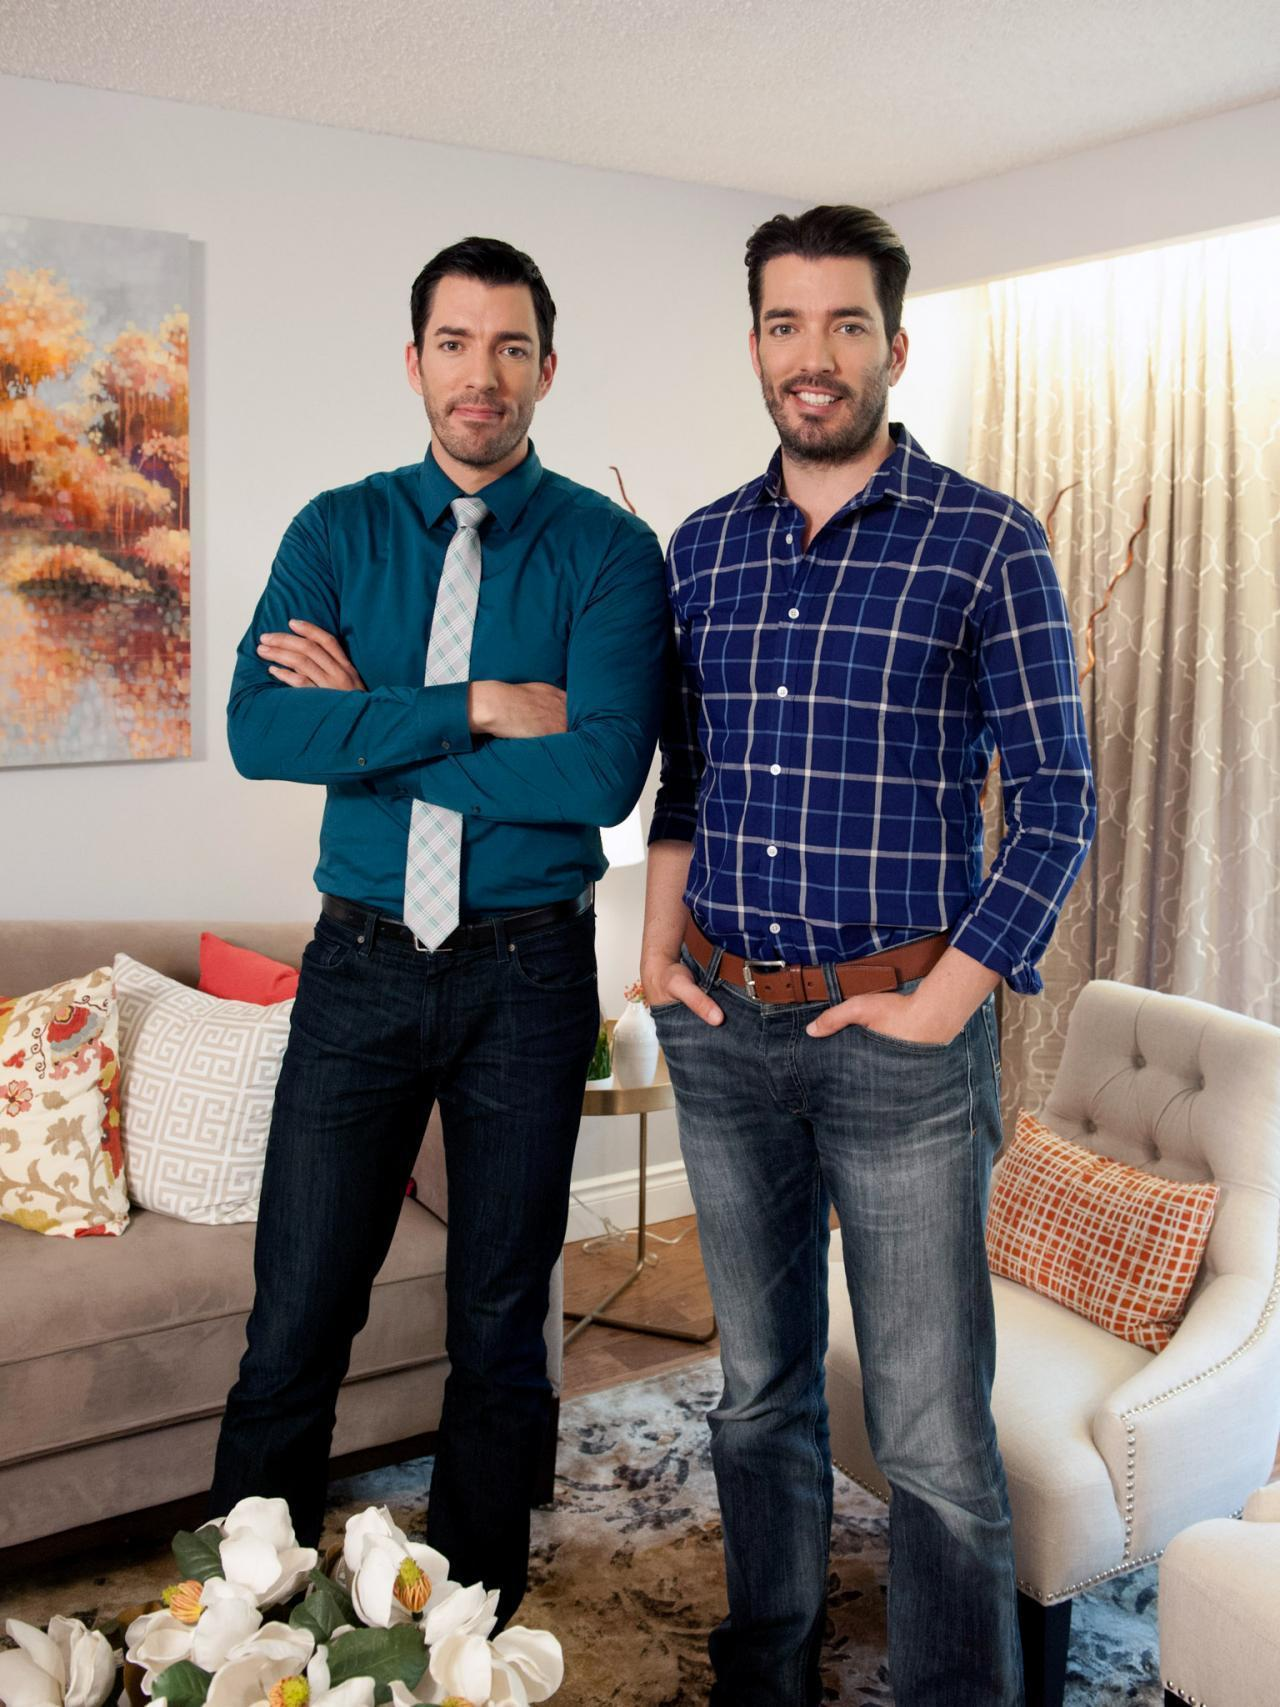 7 Home Buying And Selling Tips From The Property Brothers